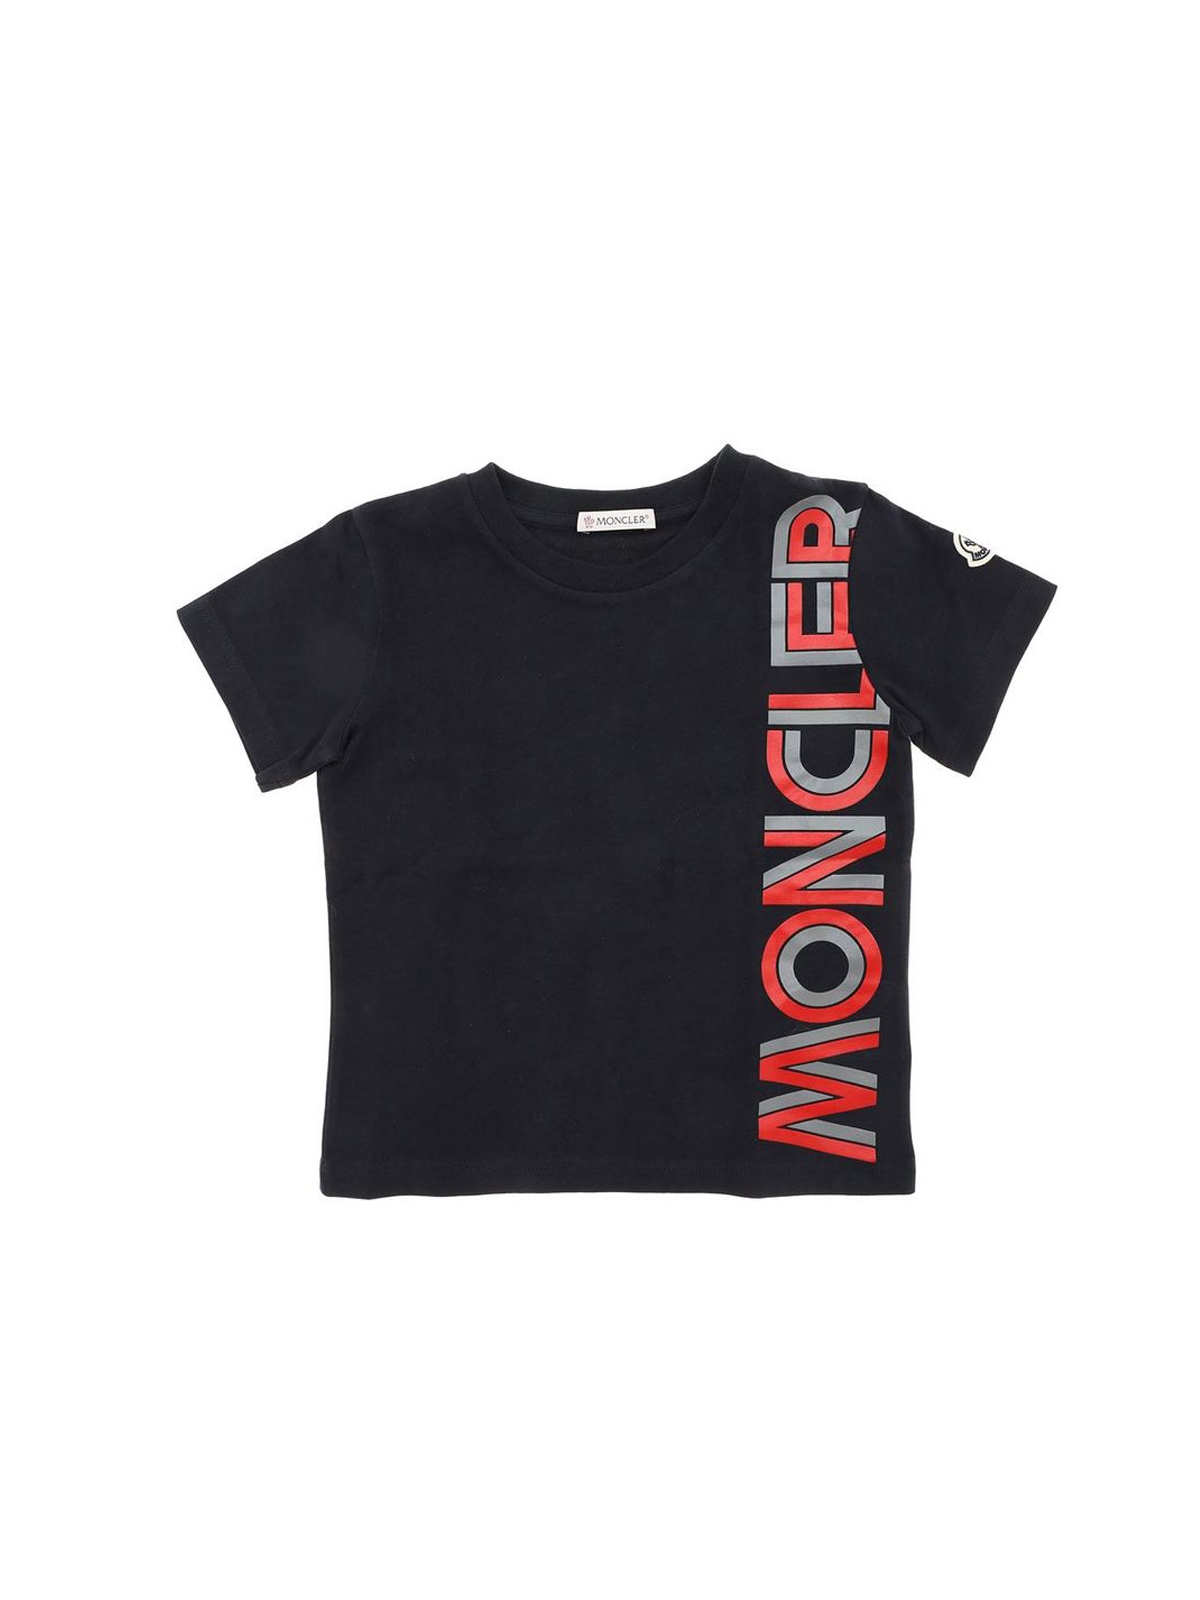 MONCLER JR RED AND GREY LOGO T-SHIRT IN BLUE